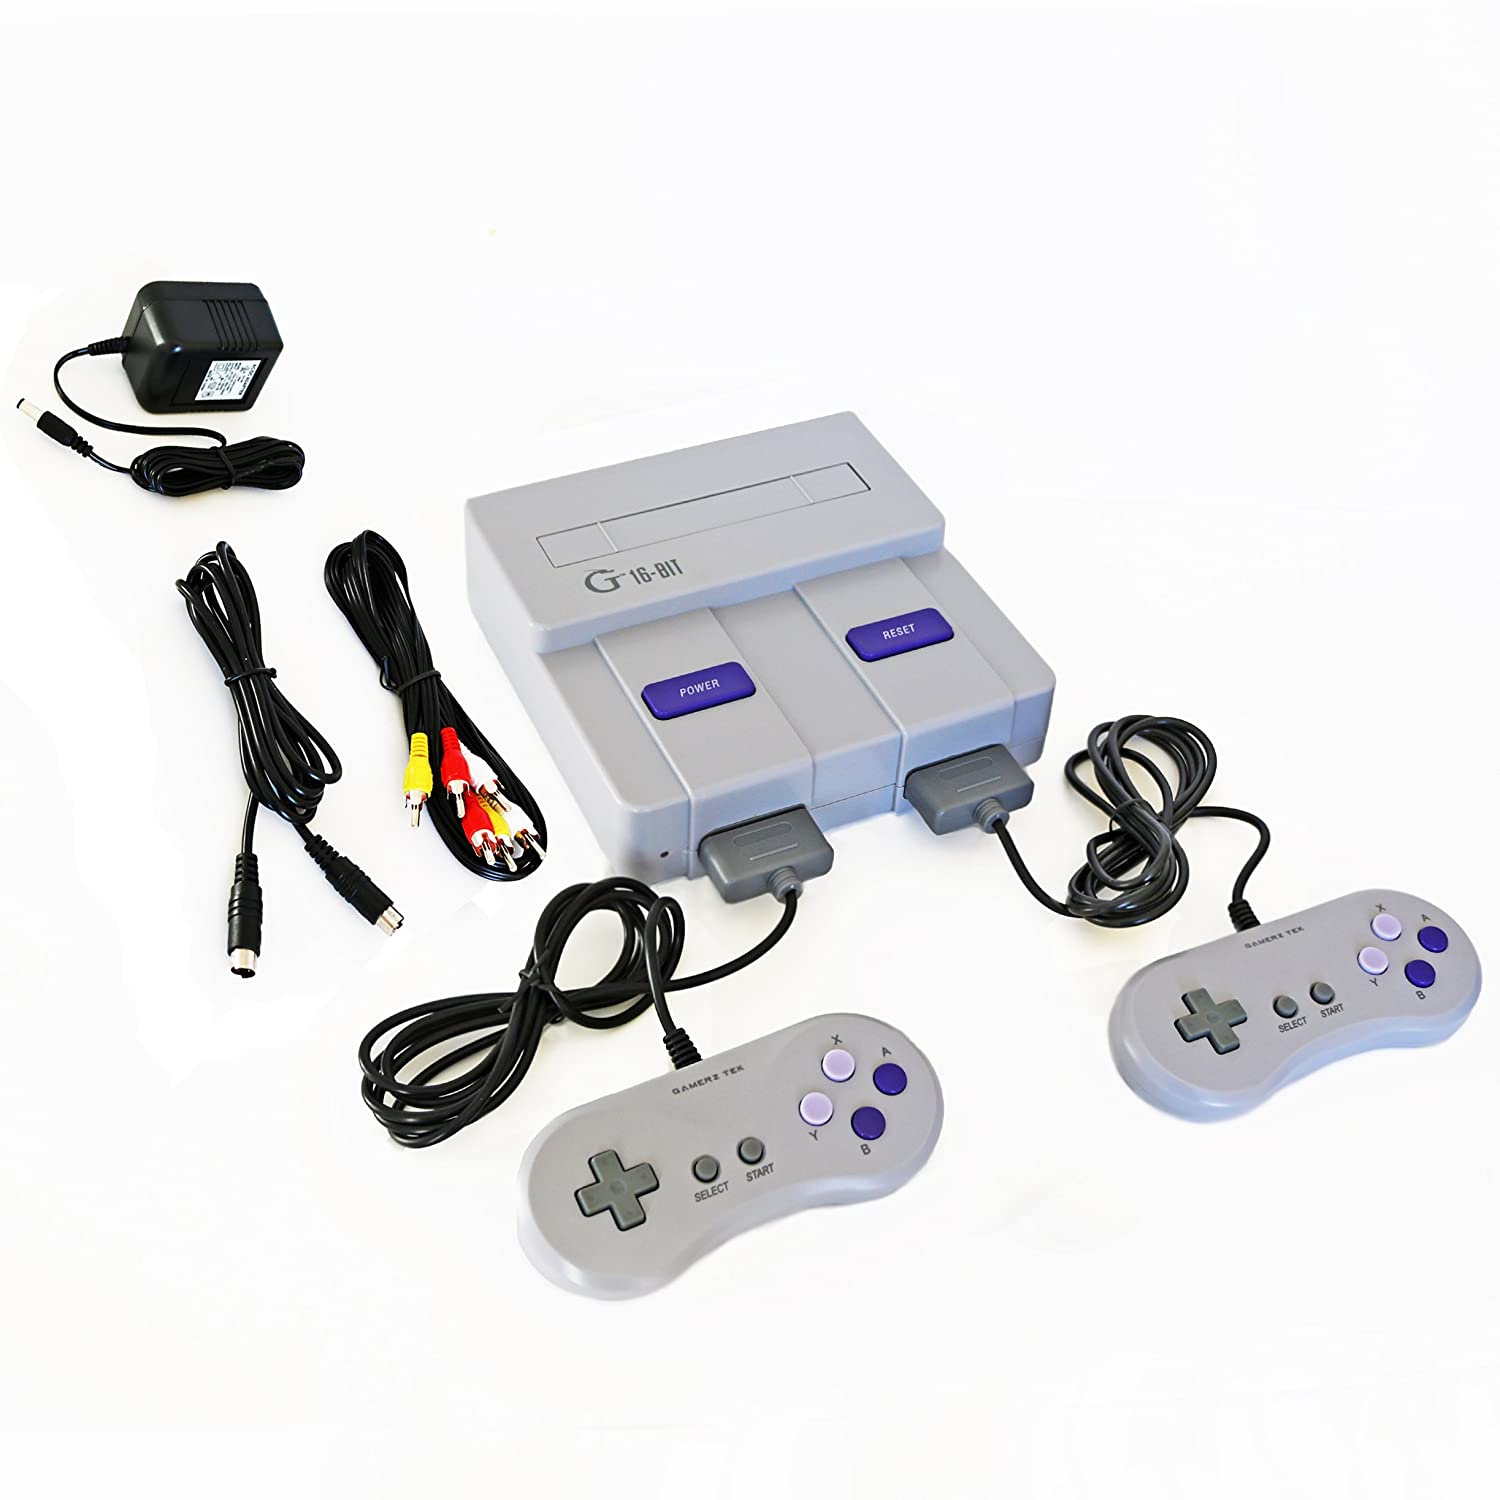 16-bit Entertainment System(NOT SNES MINI, NO GAMES INCLUDED) Compatible with Super Nintendo Games: Video Games